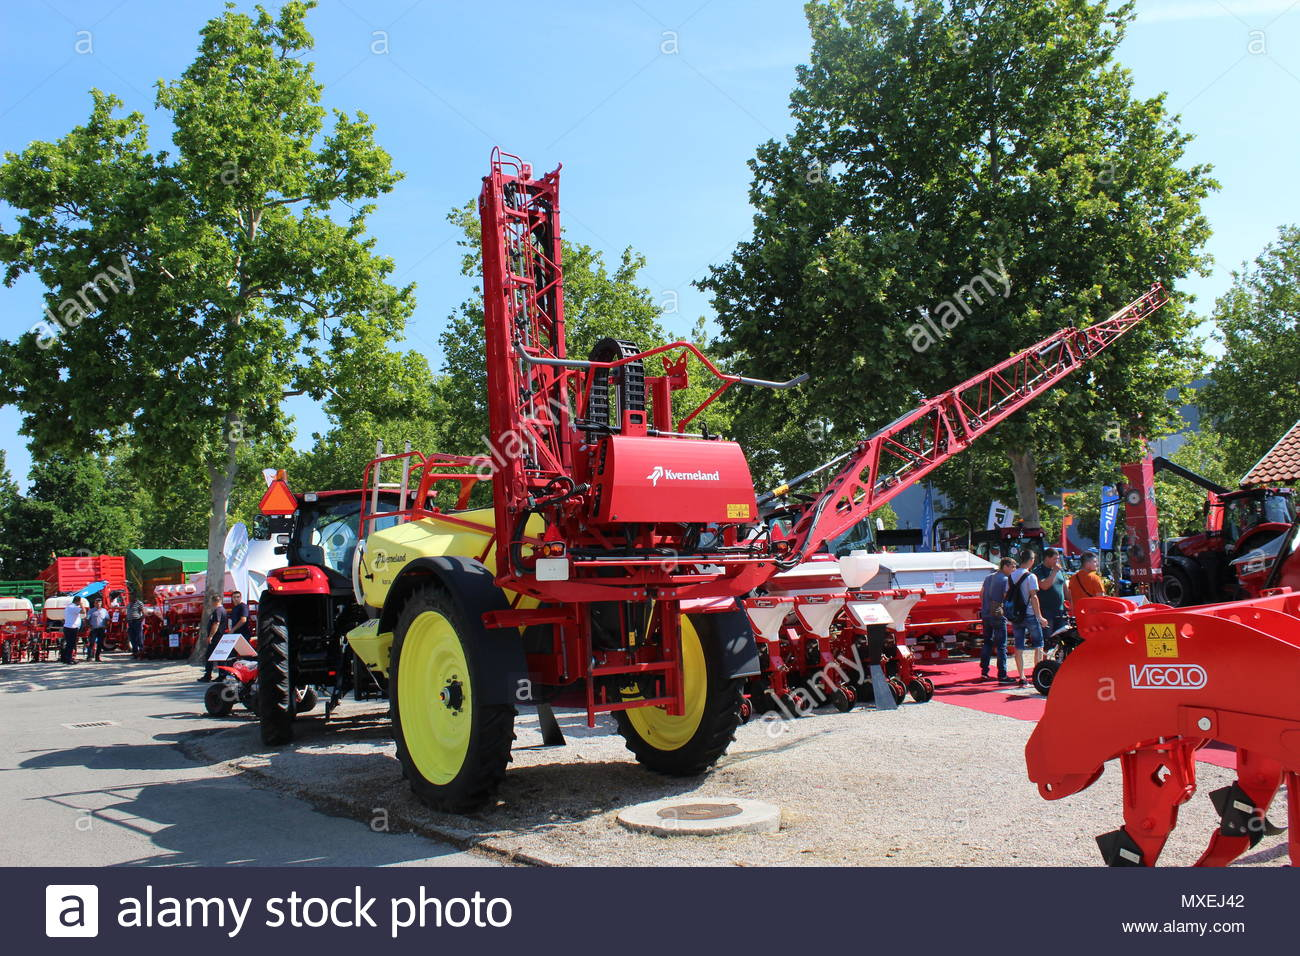 chemical boom sprayers stock photos \u0026 chemical boom sprayers stocknovi sad, serbia, 20 05 2018 fair, new machine kverneland trailed sprayer,